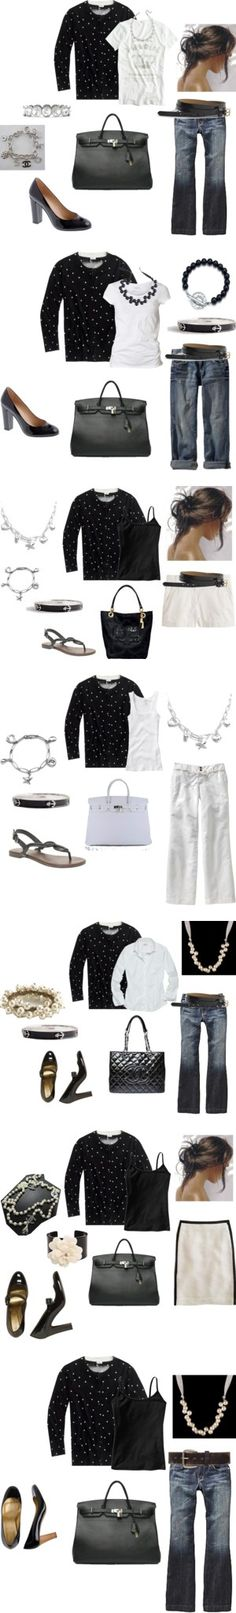 """Scattered Dot Cardigan"" by cocodaisy on Polyvore"